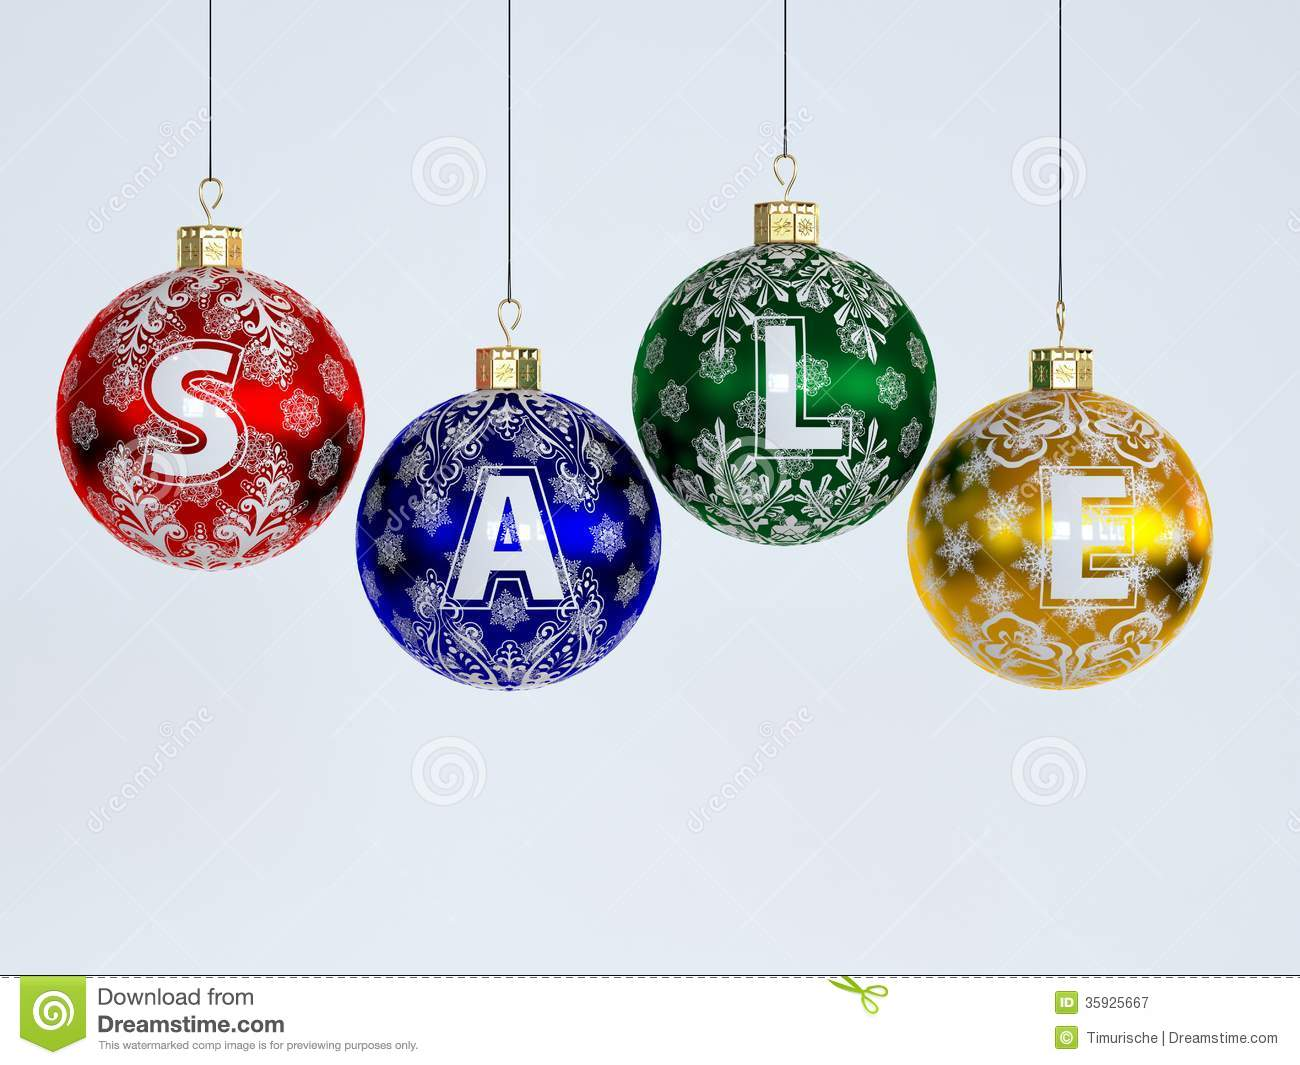 download chrismas sale christmas tree decorations stock illustration illustration of backgrounds objects